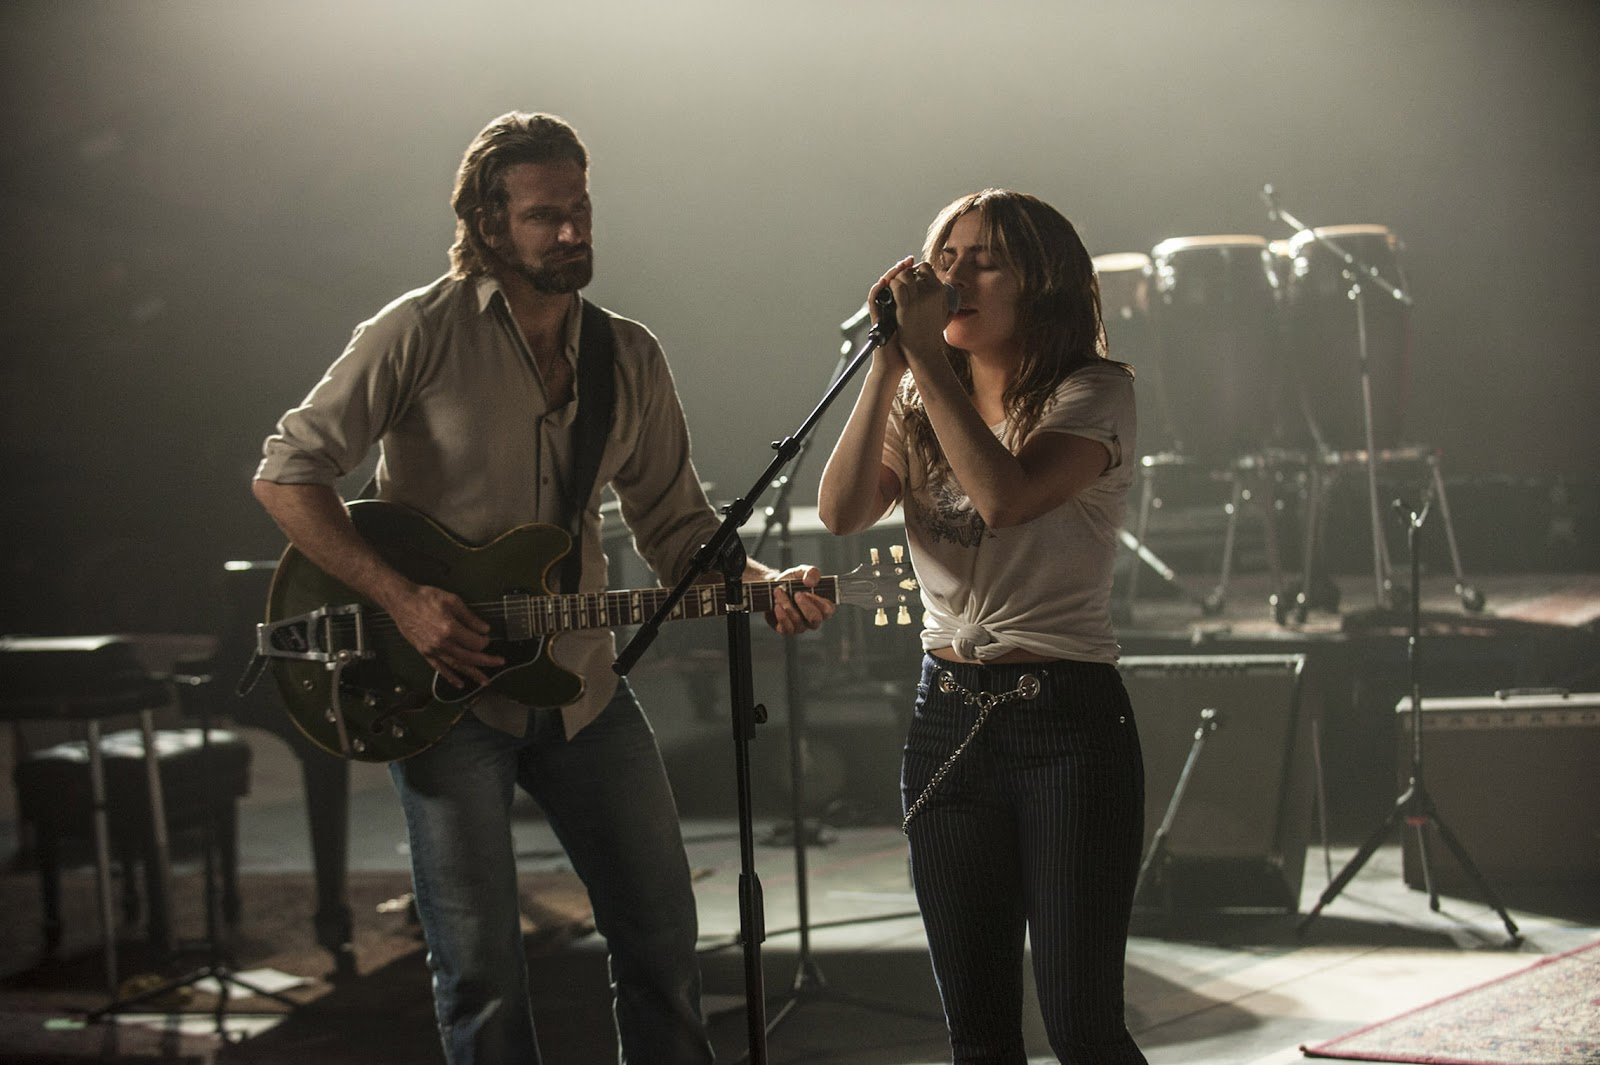 Картинки по запросу lady gaga bradley cooper a star is born